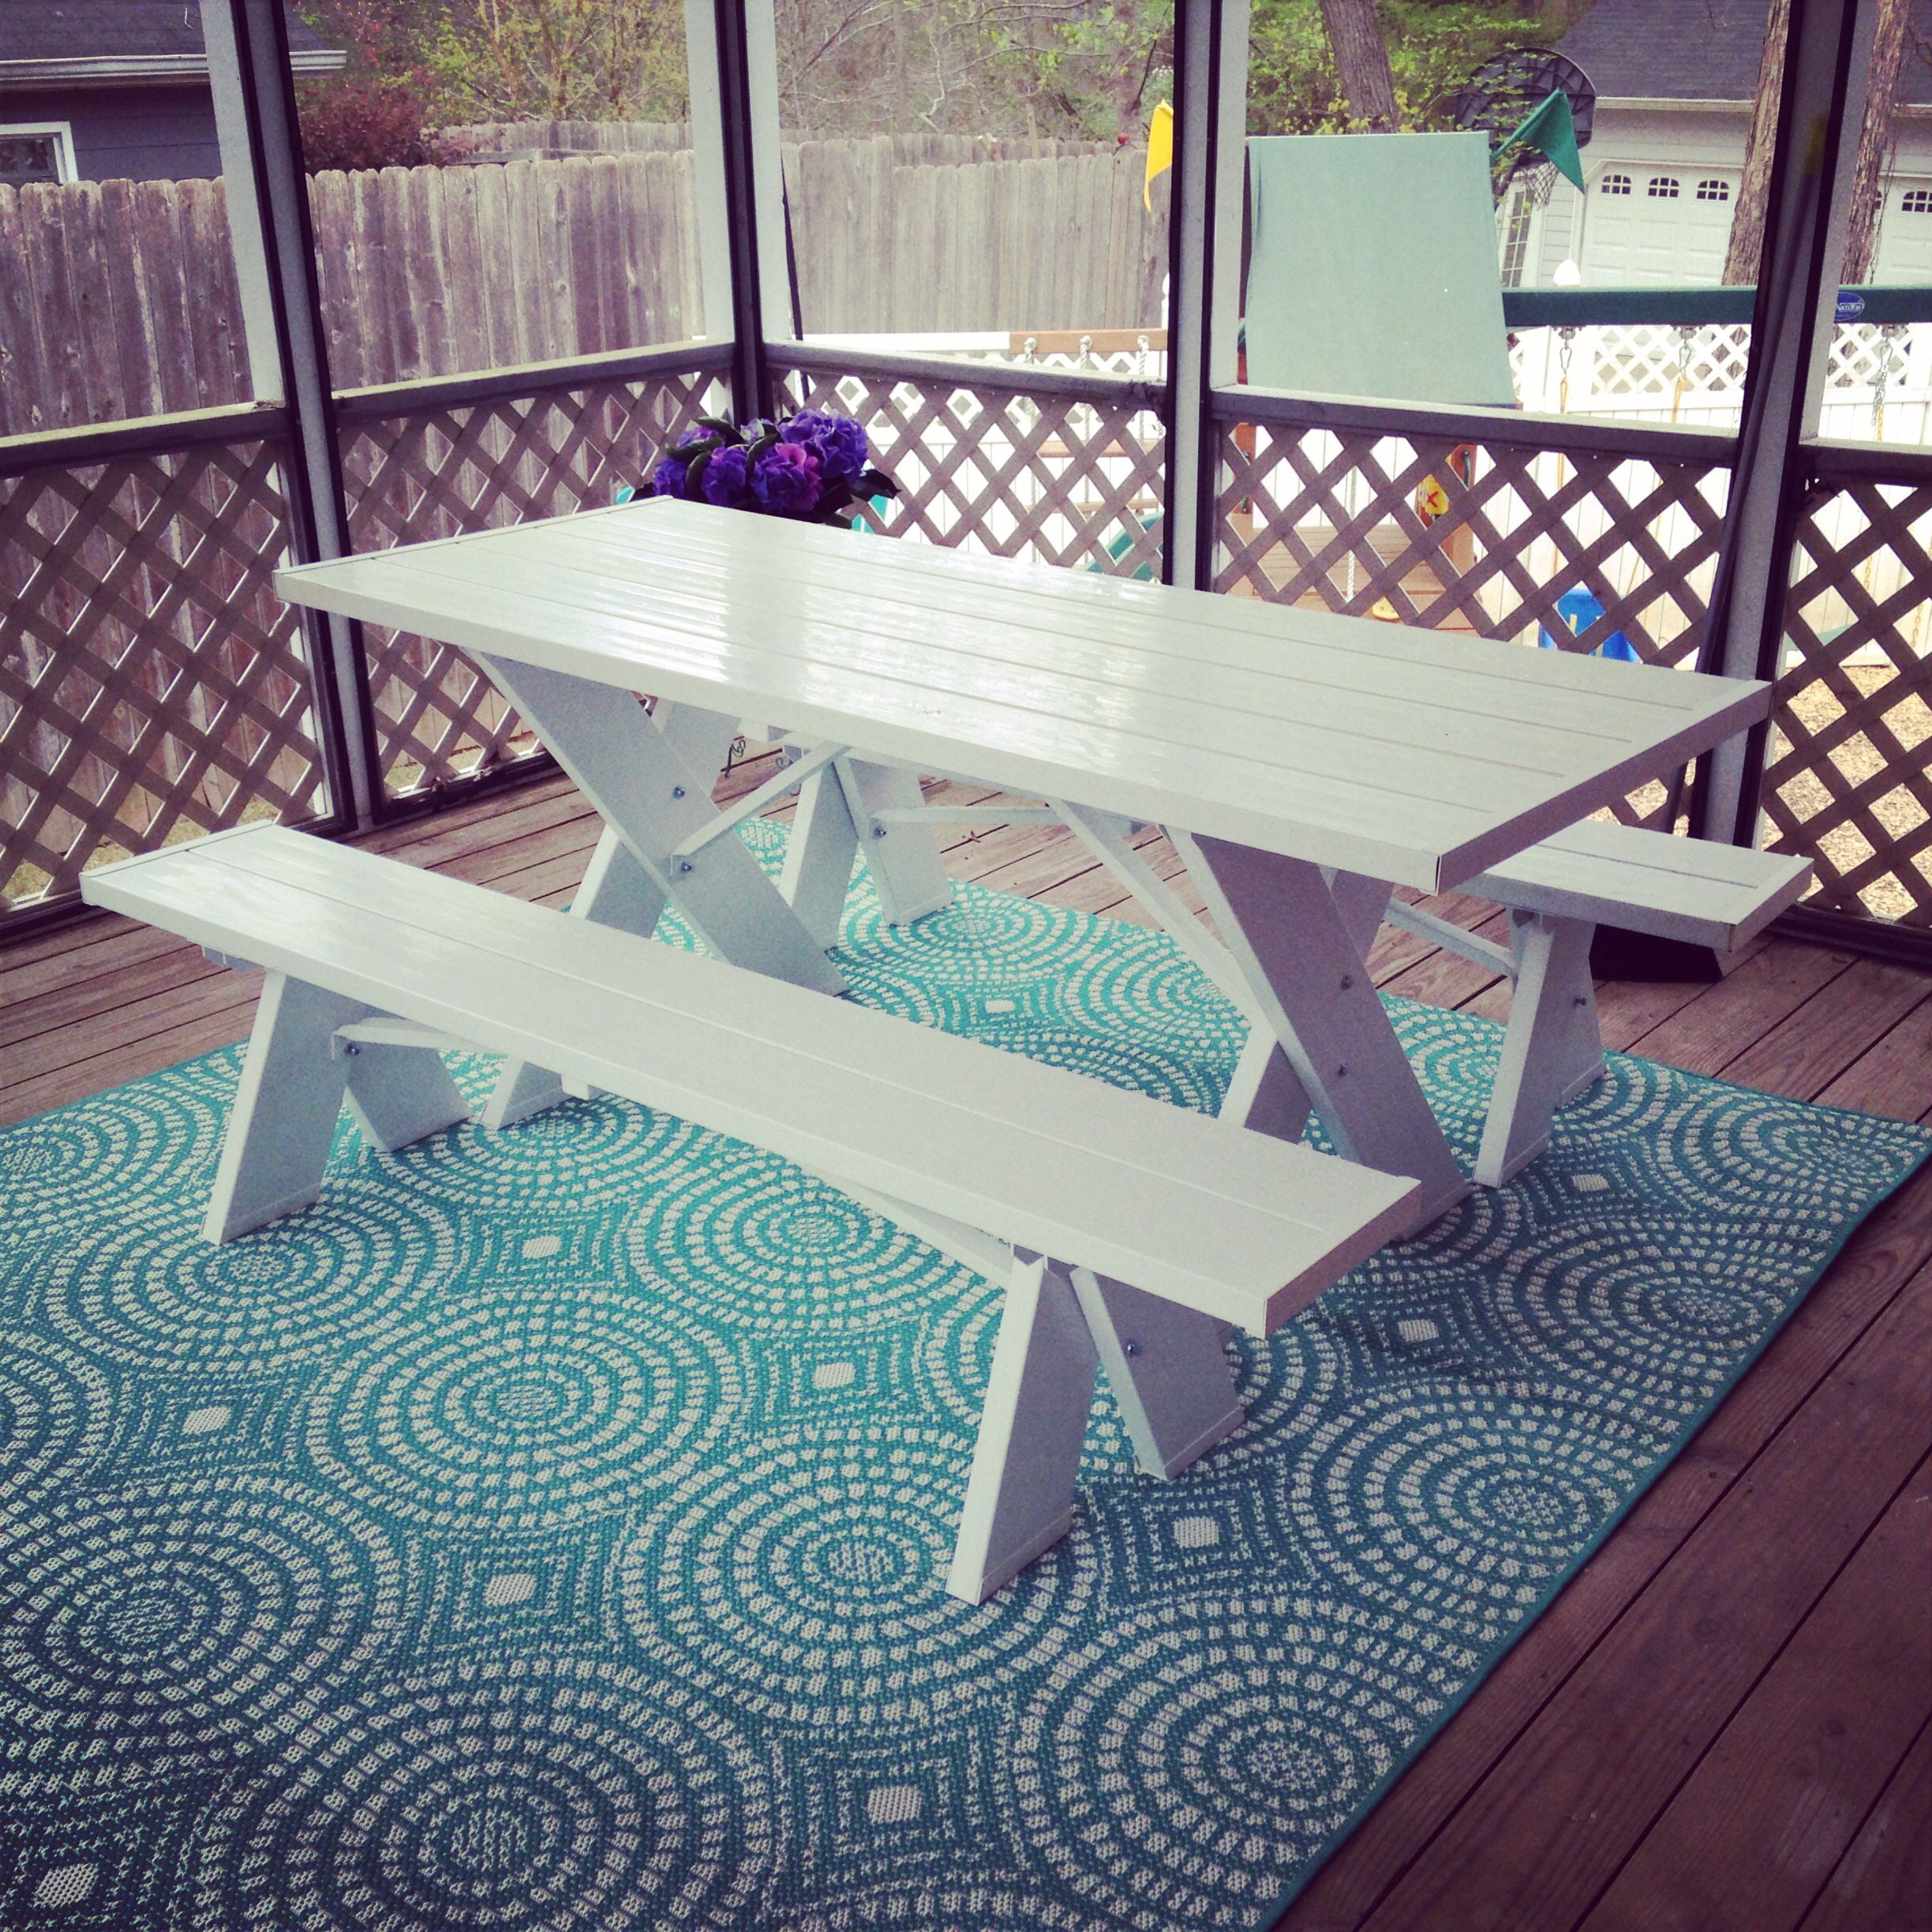 Target outdoor rug and amazon.com white picnic table. So ready for ...